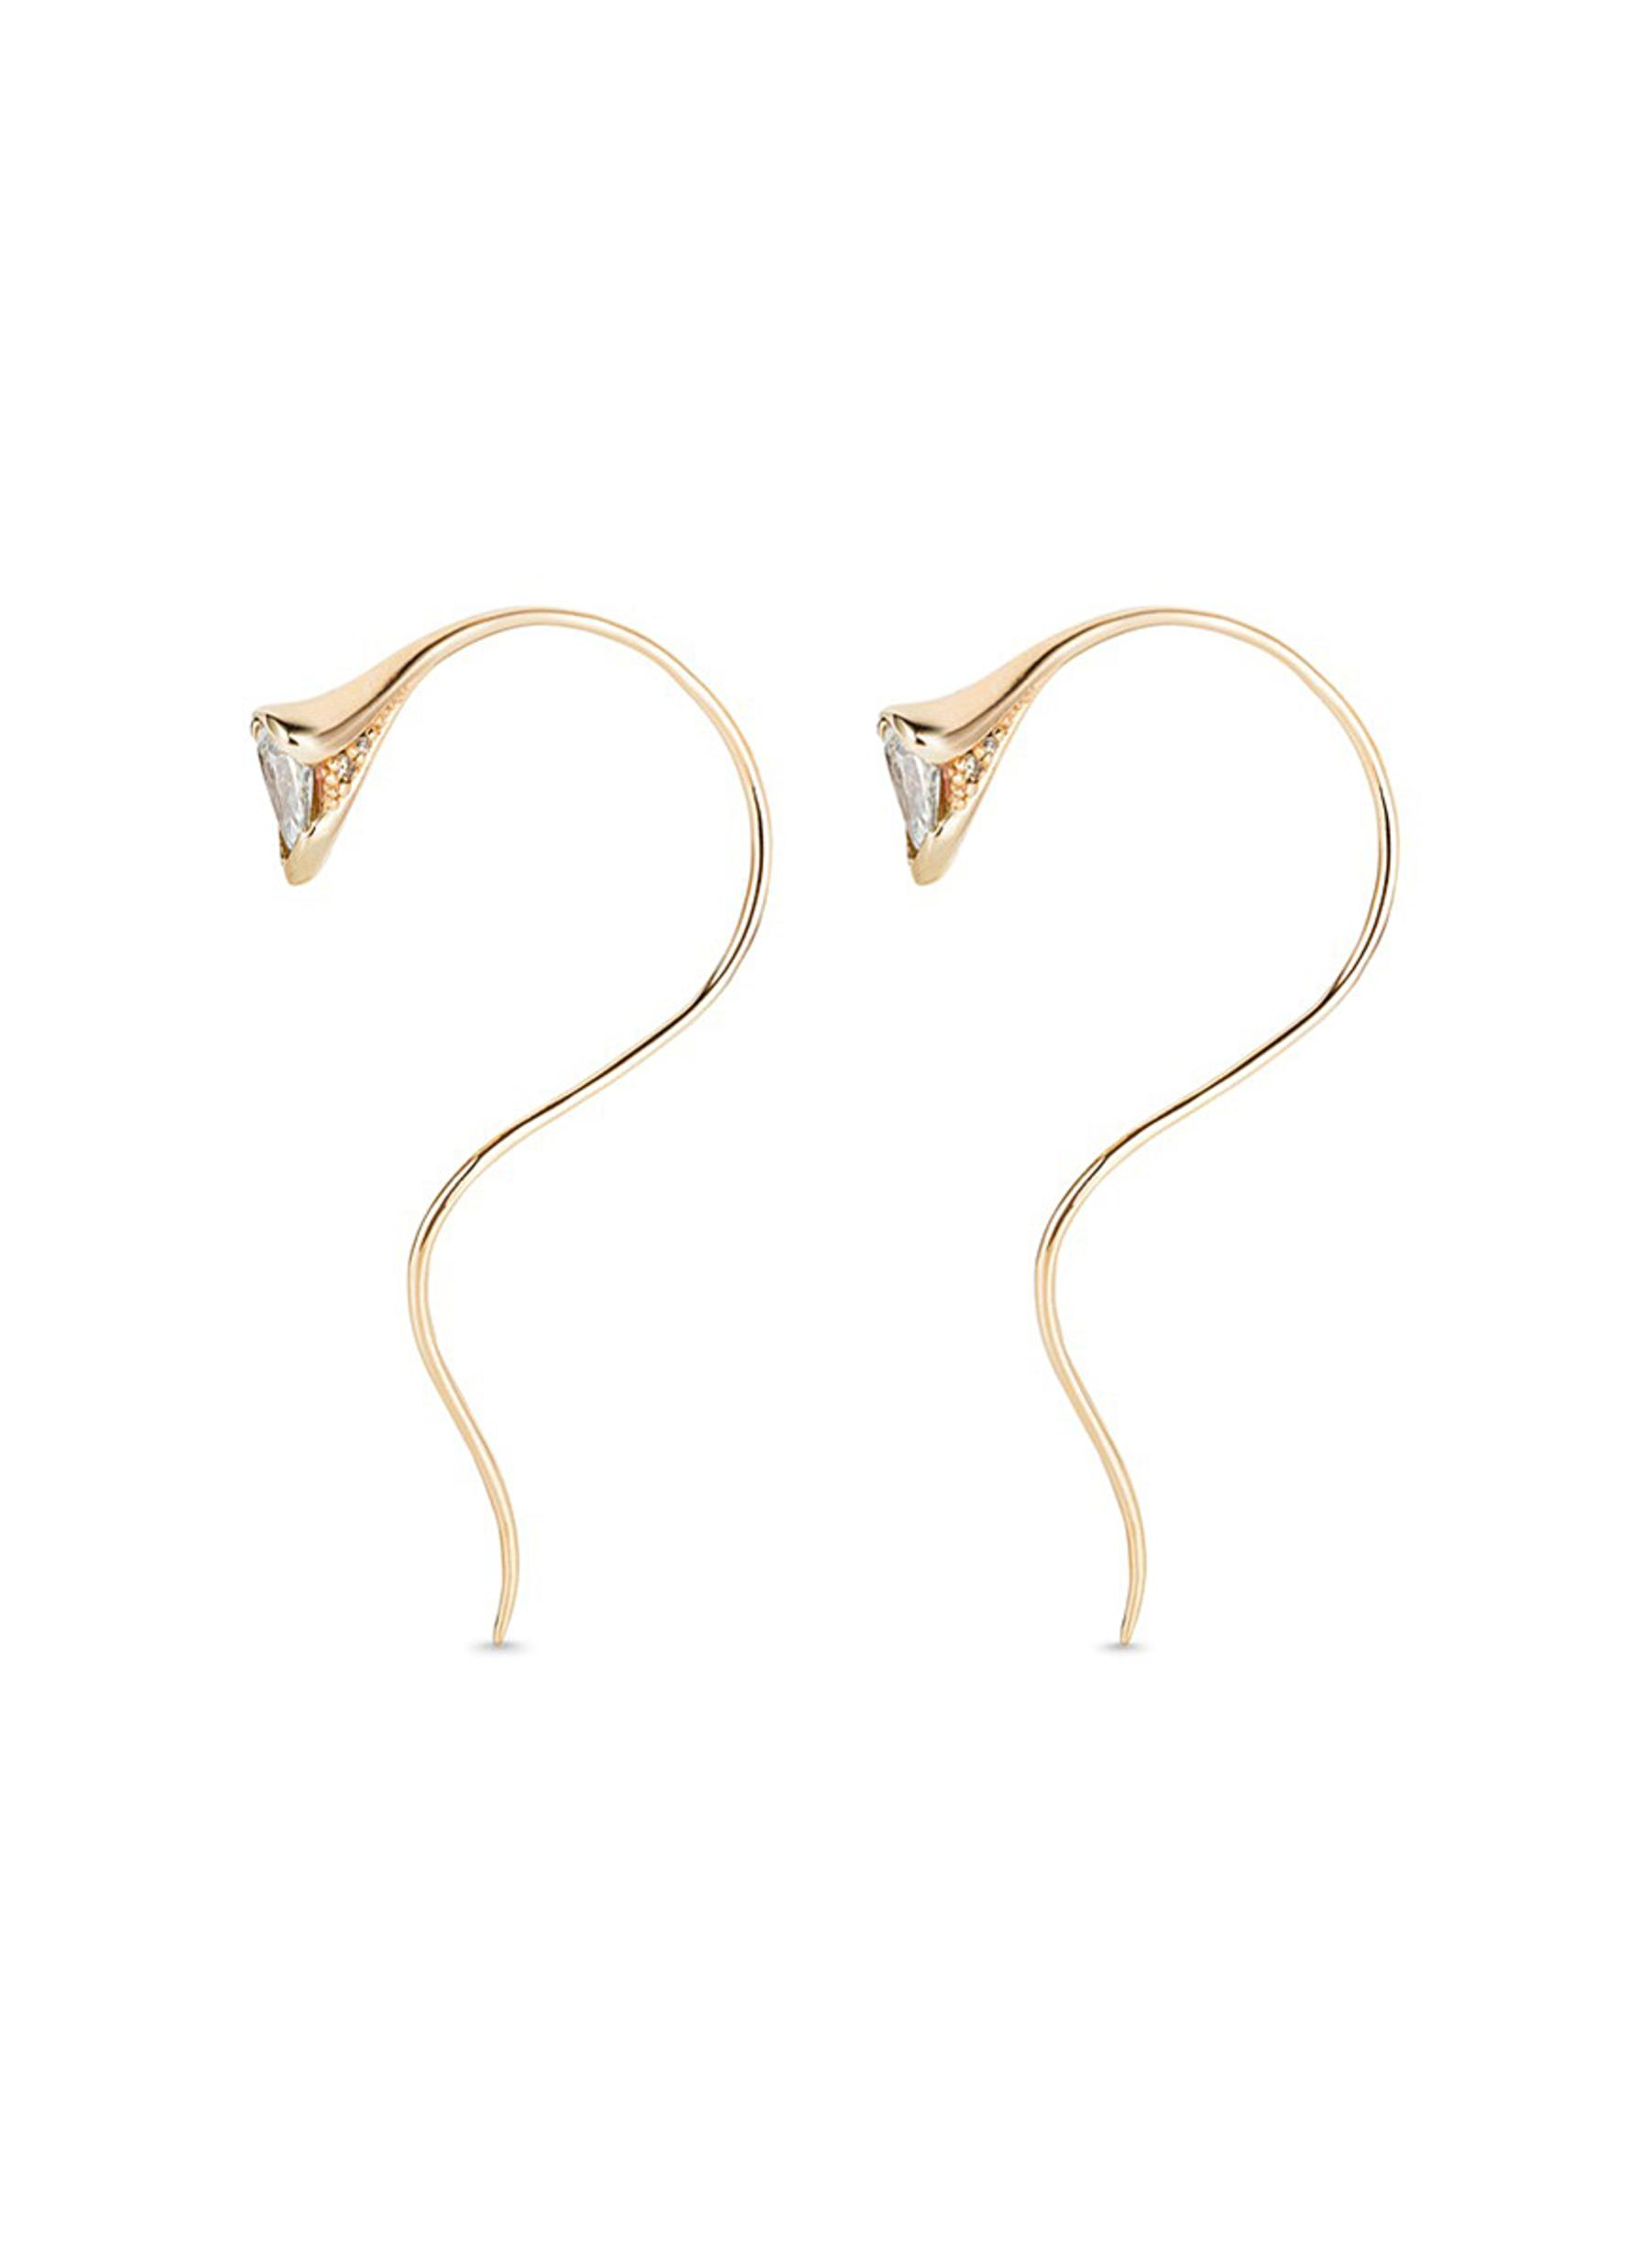 Sprout diamond 18k gold small earrings by Fernando Jorge